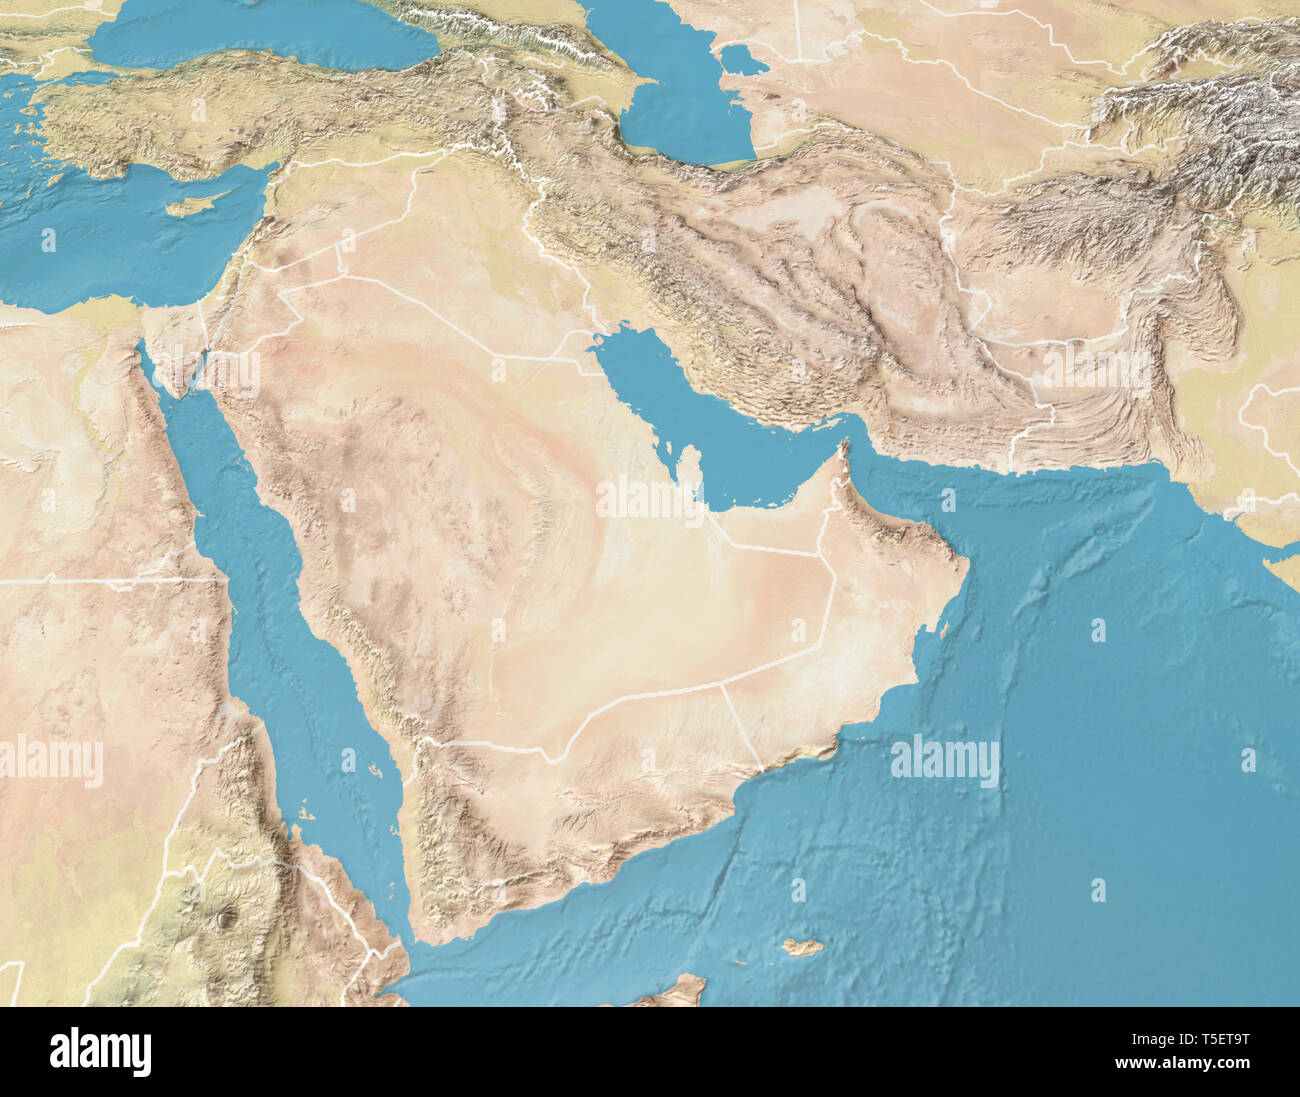 Arabian Peninsula Map High Resolution Stock Photography And Images Alamy